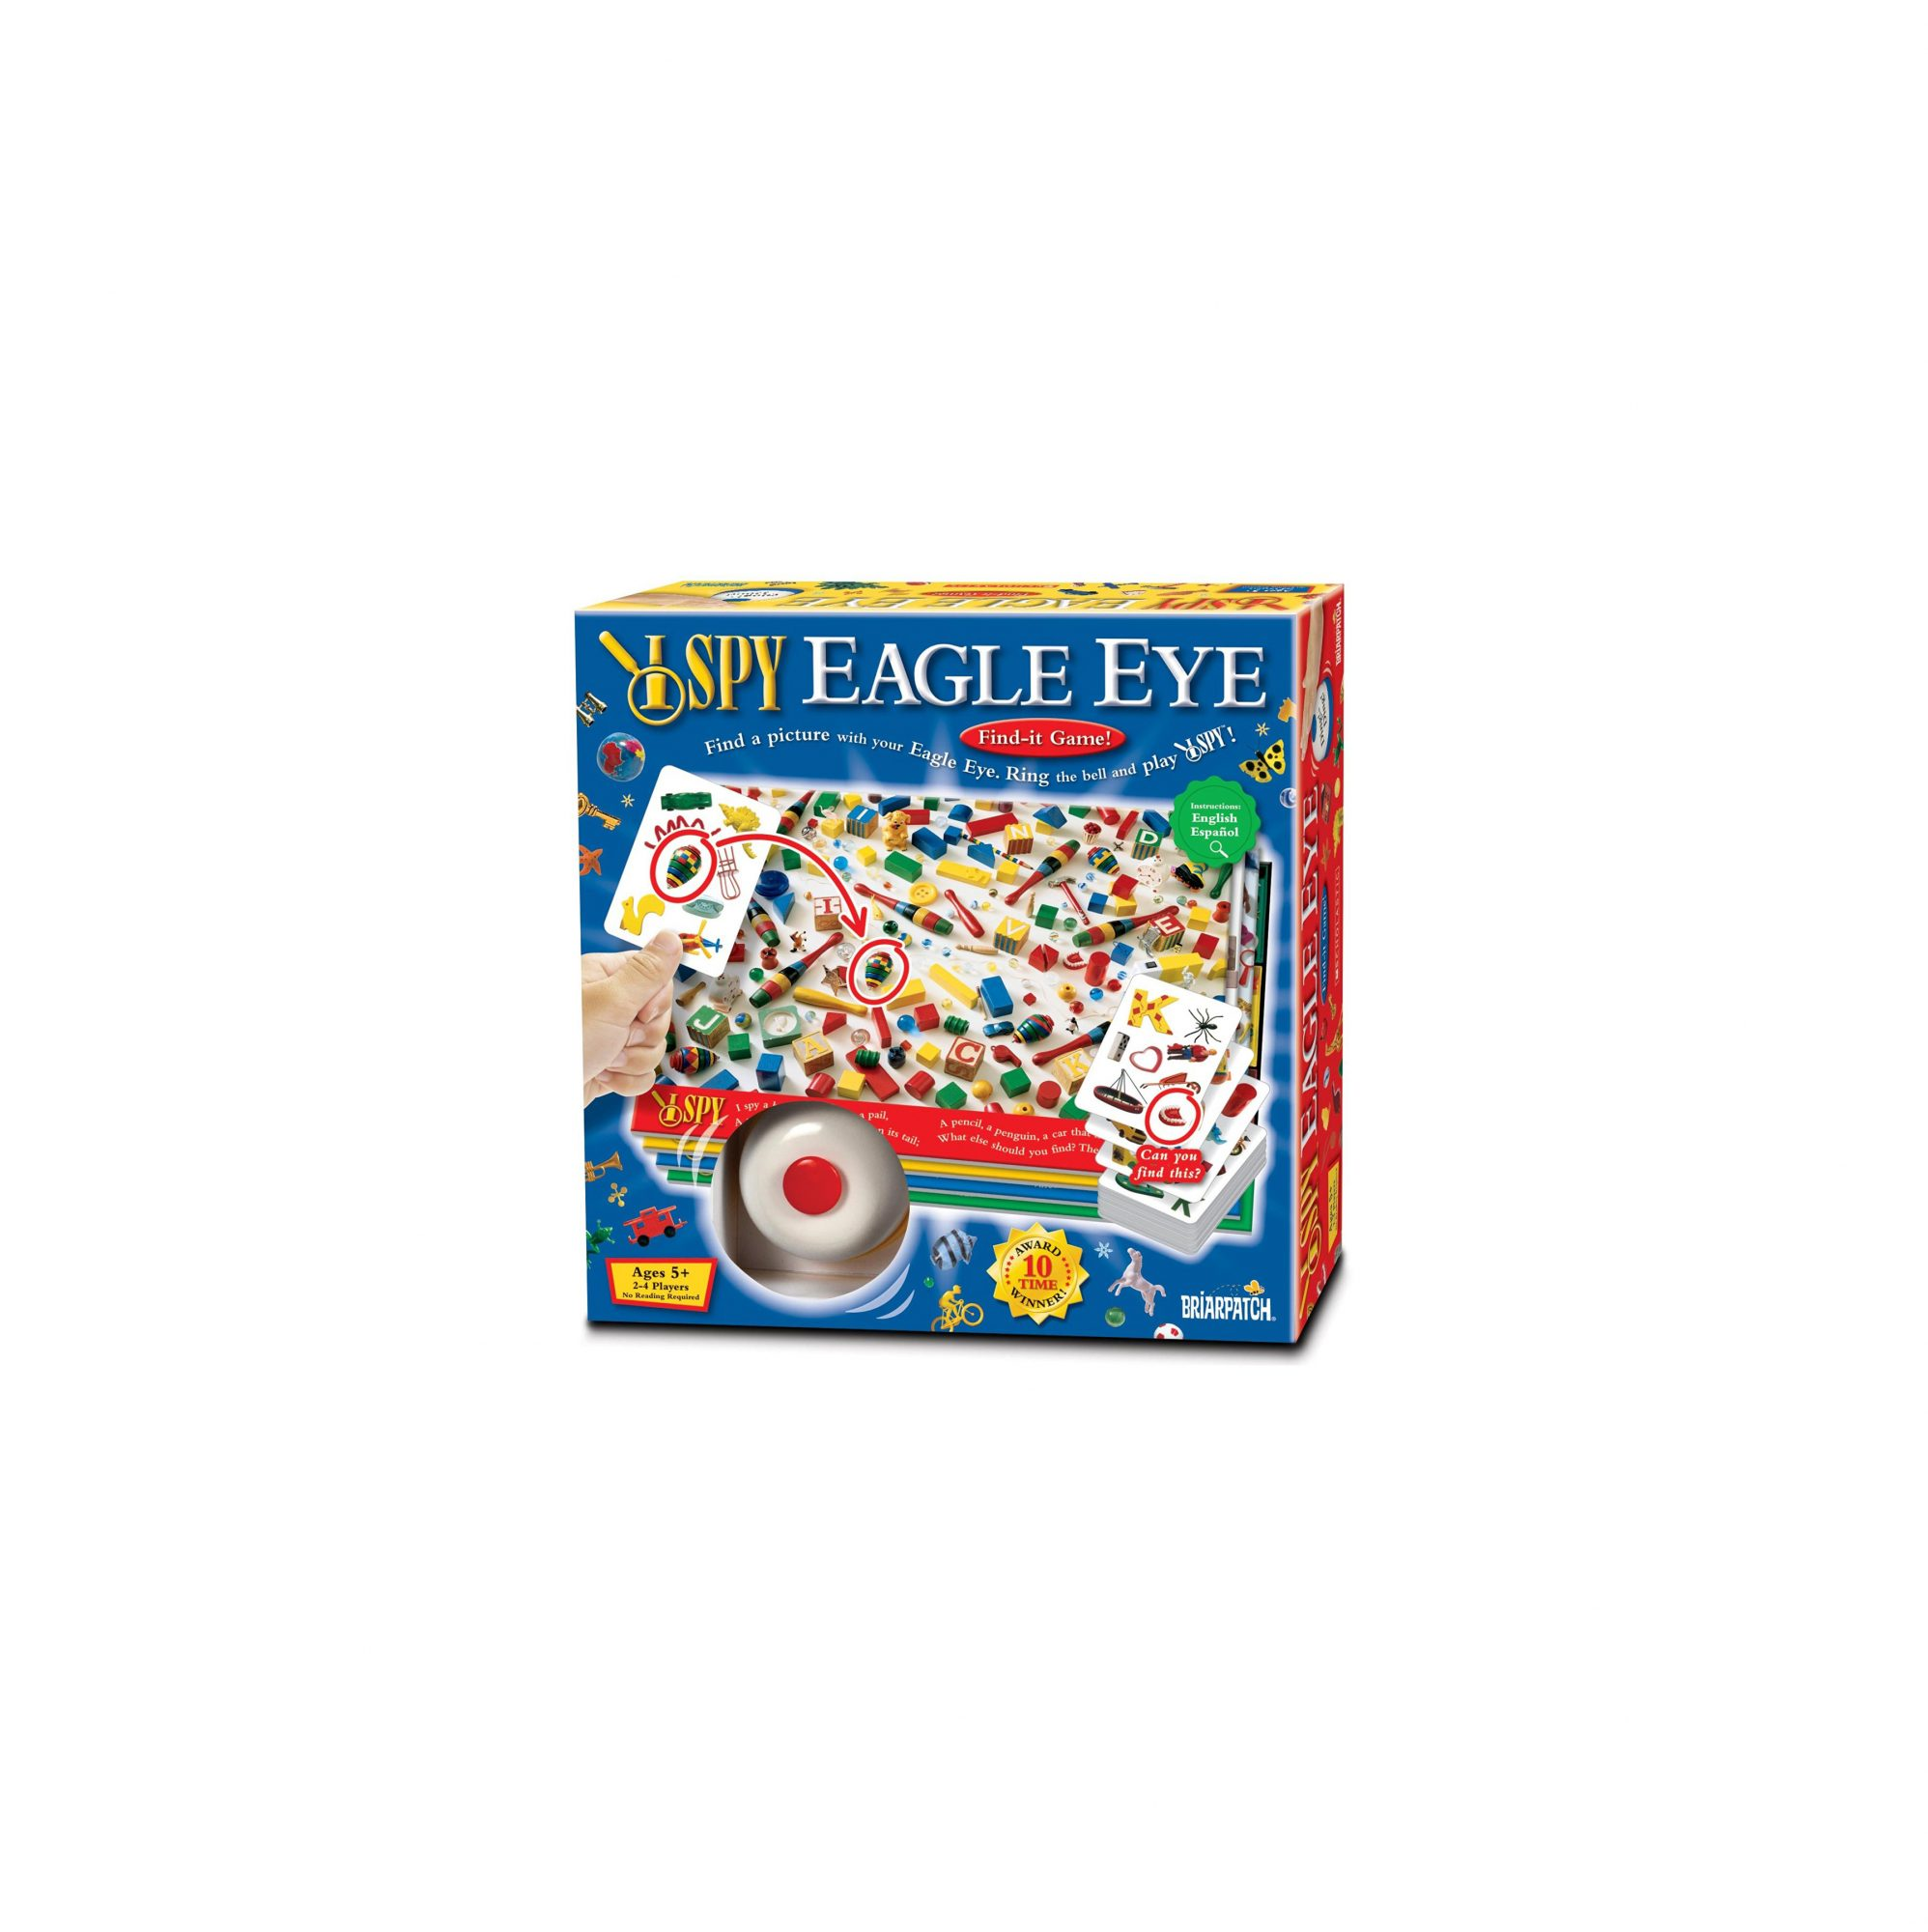 Gifts for kids - I Spy Eagle Eye game